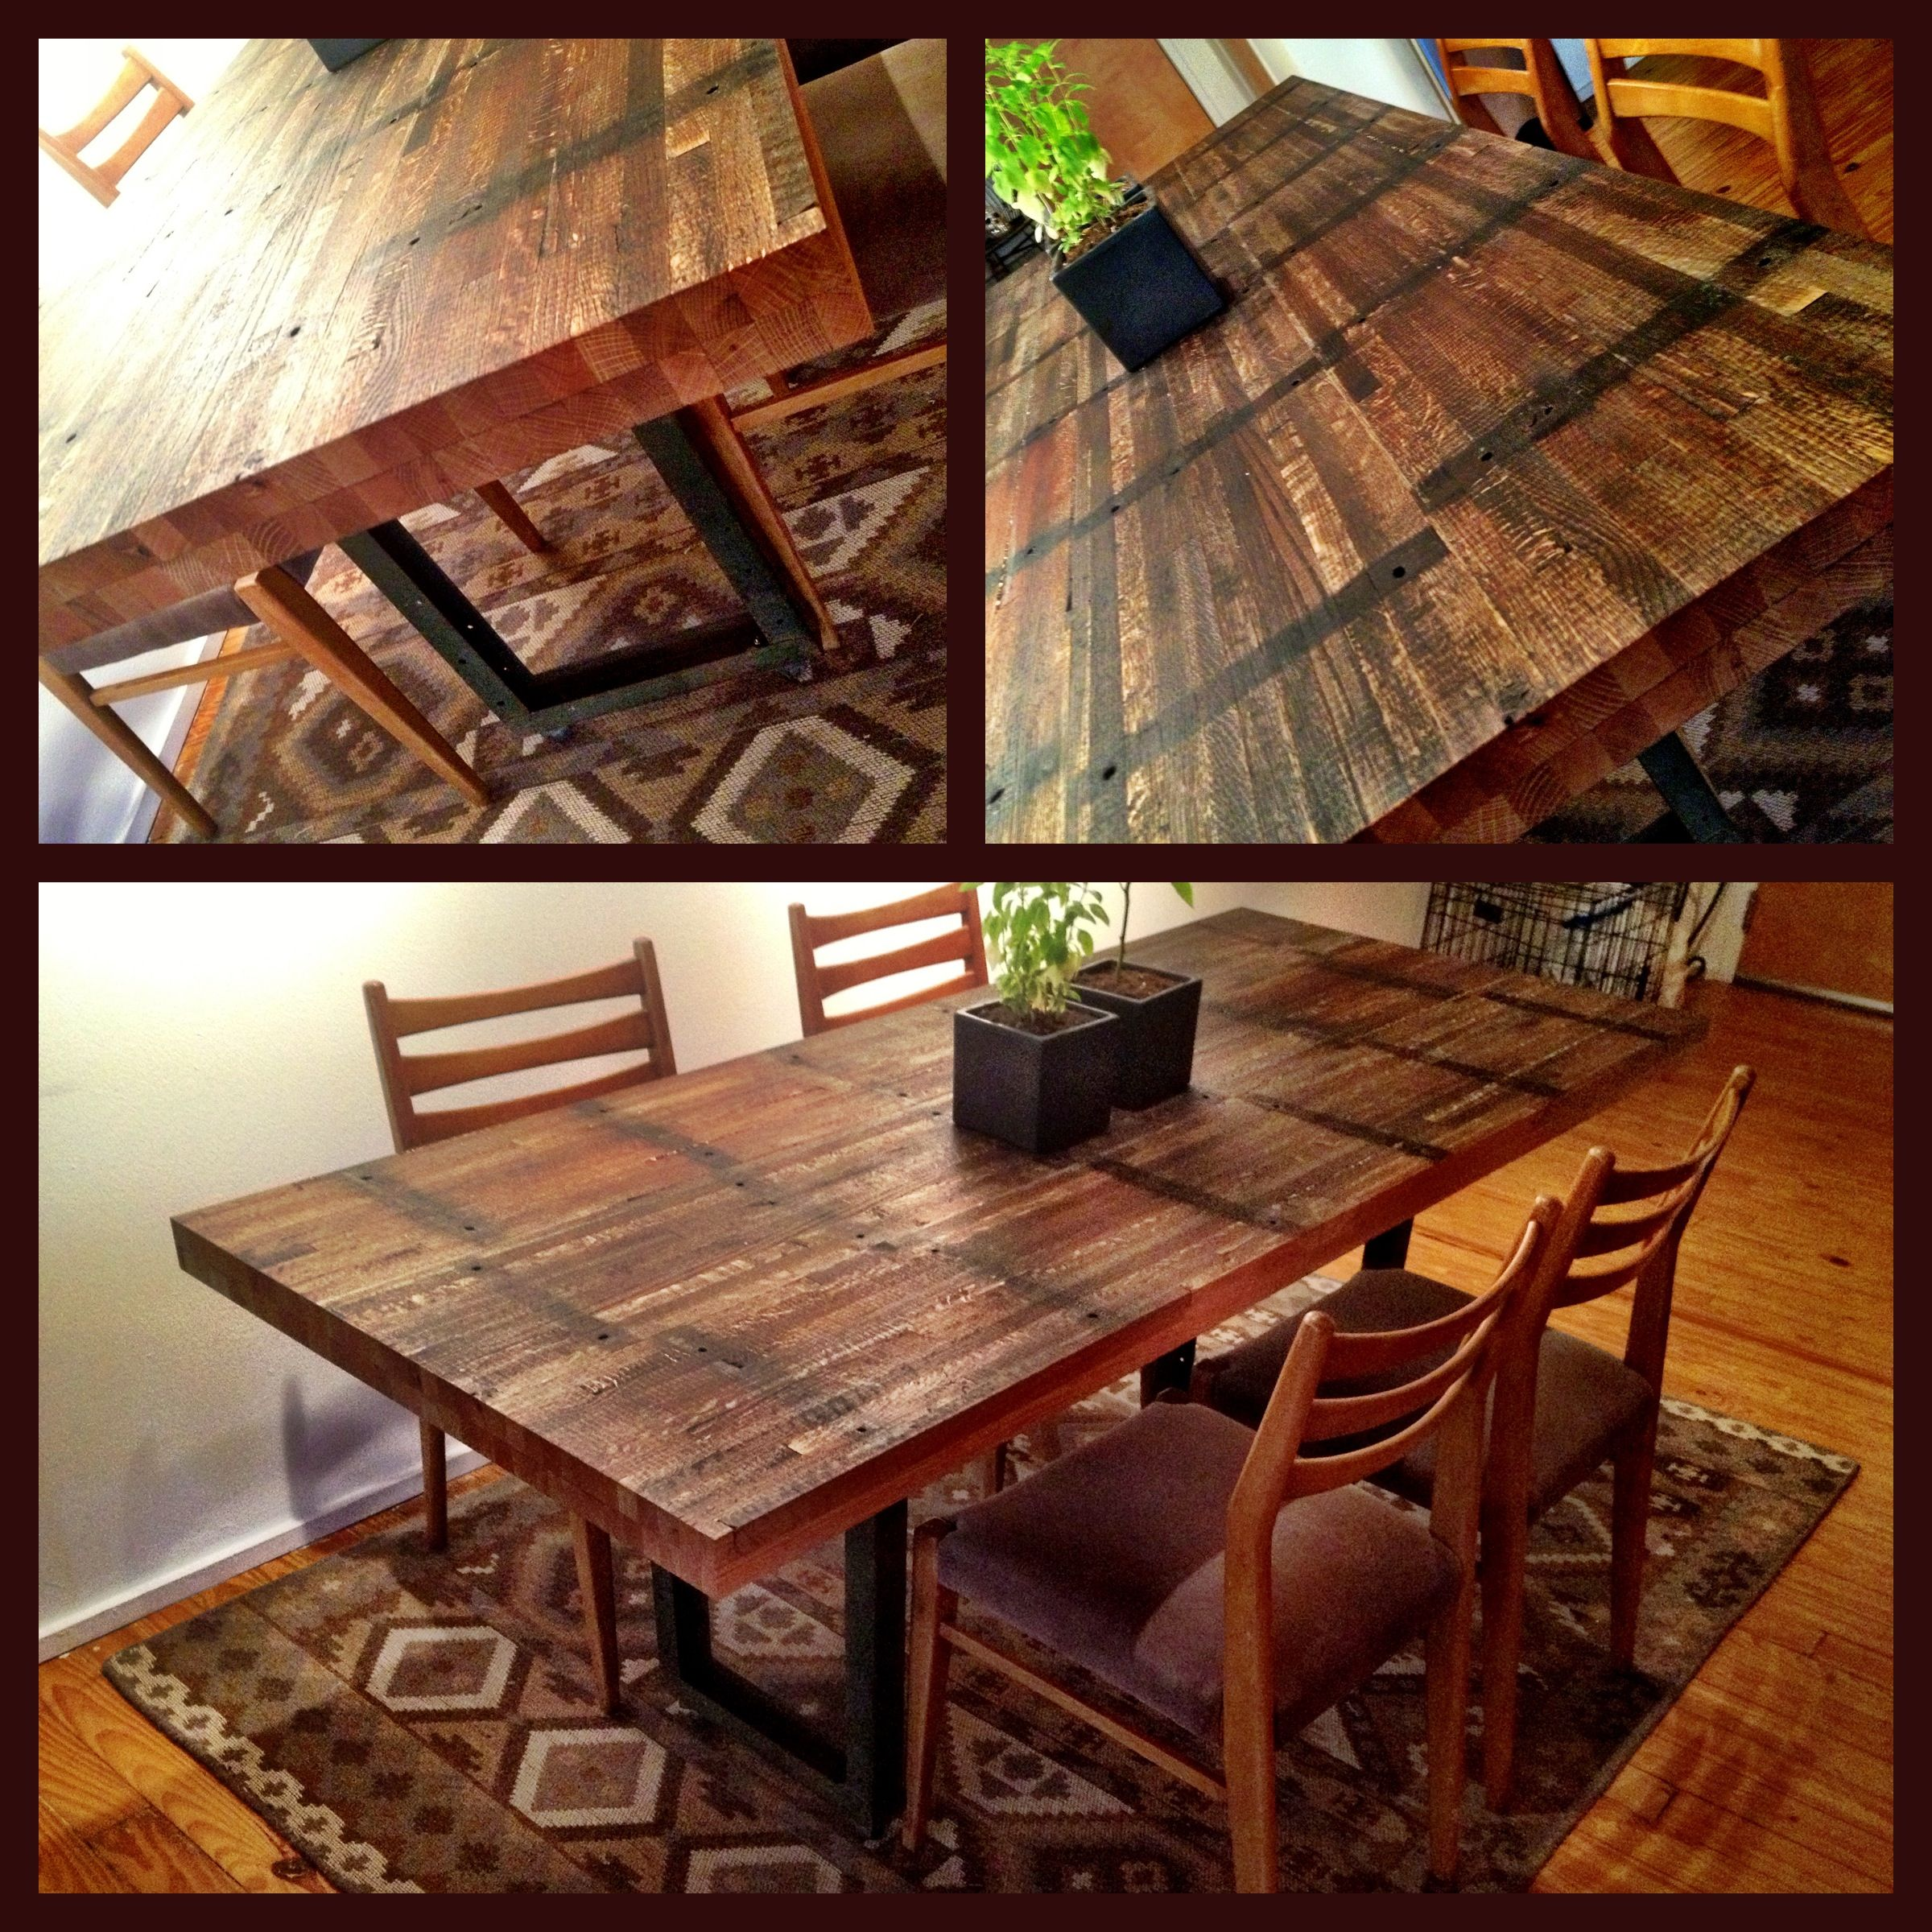 Custom Dining Table Reclaimed Wood With Metal Legs On Wheels Family Style Designed By Andrew Mcguire Deepfrieddesigns Austin Tx